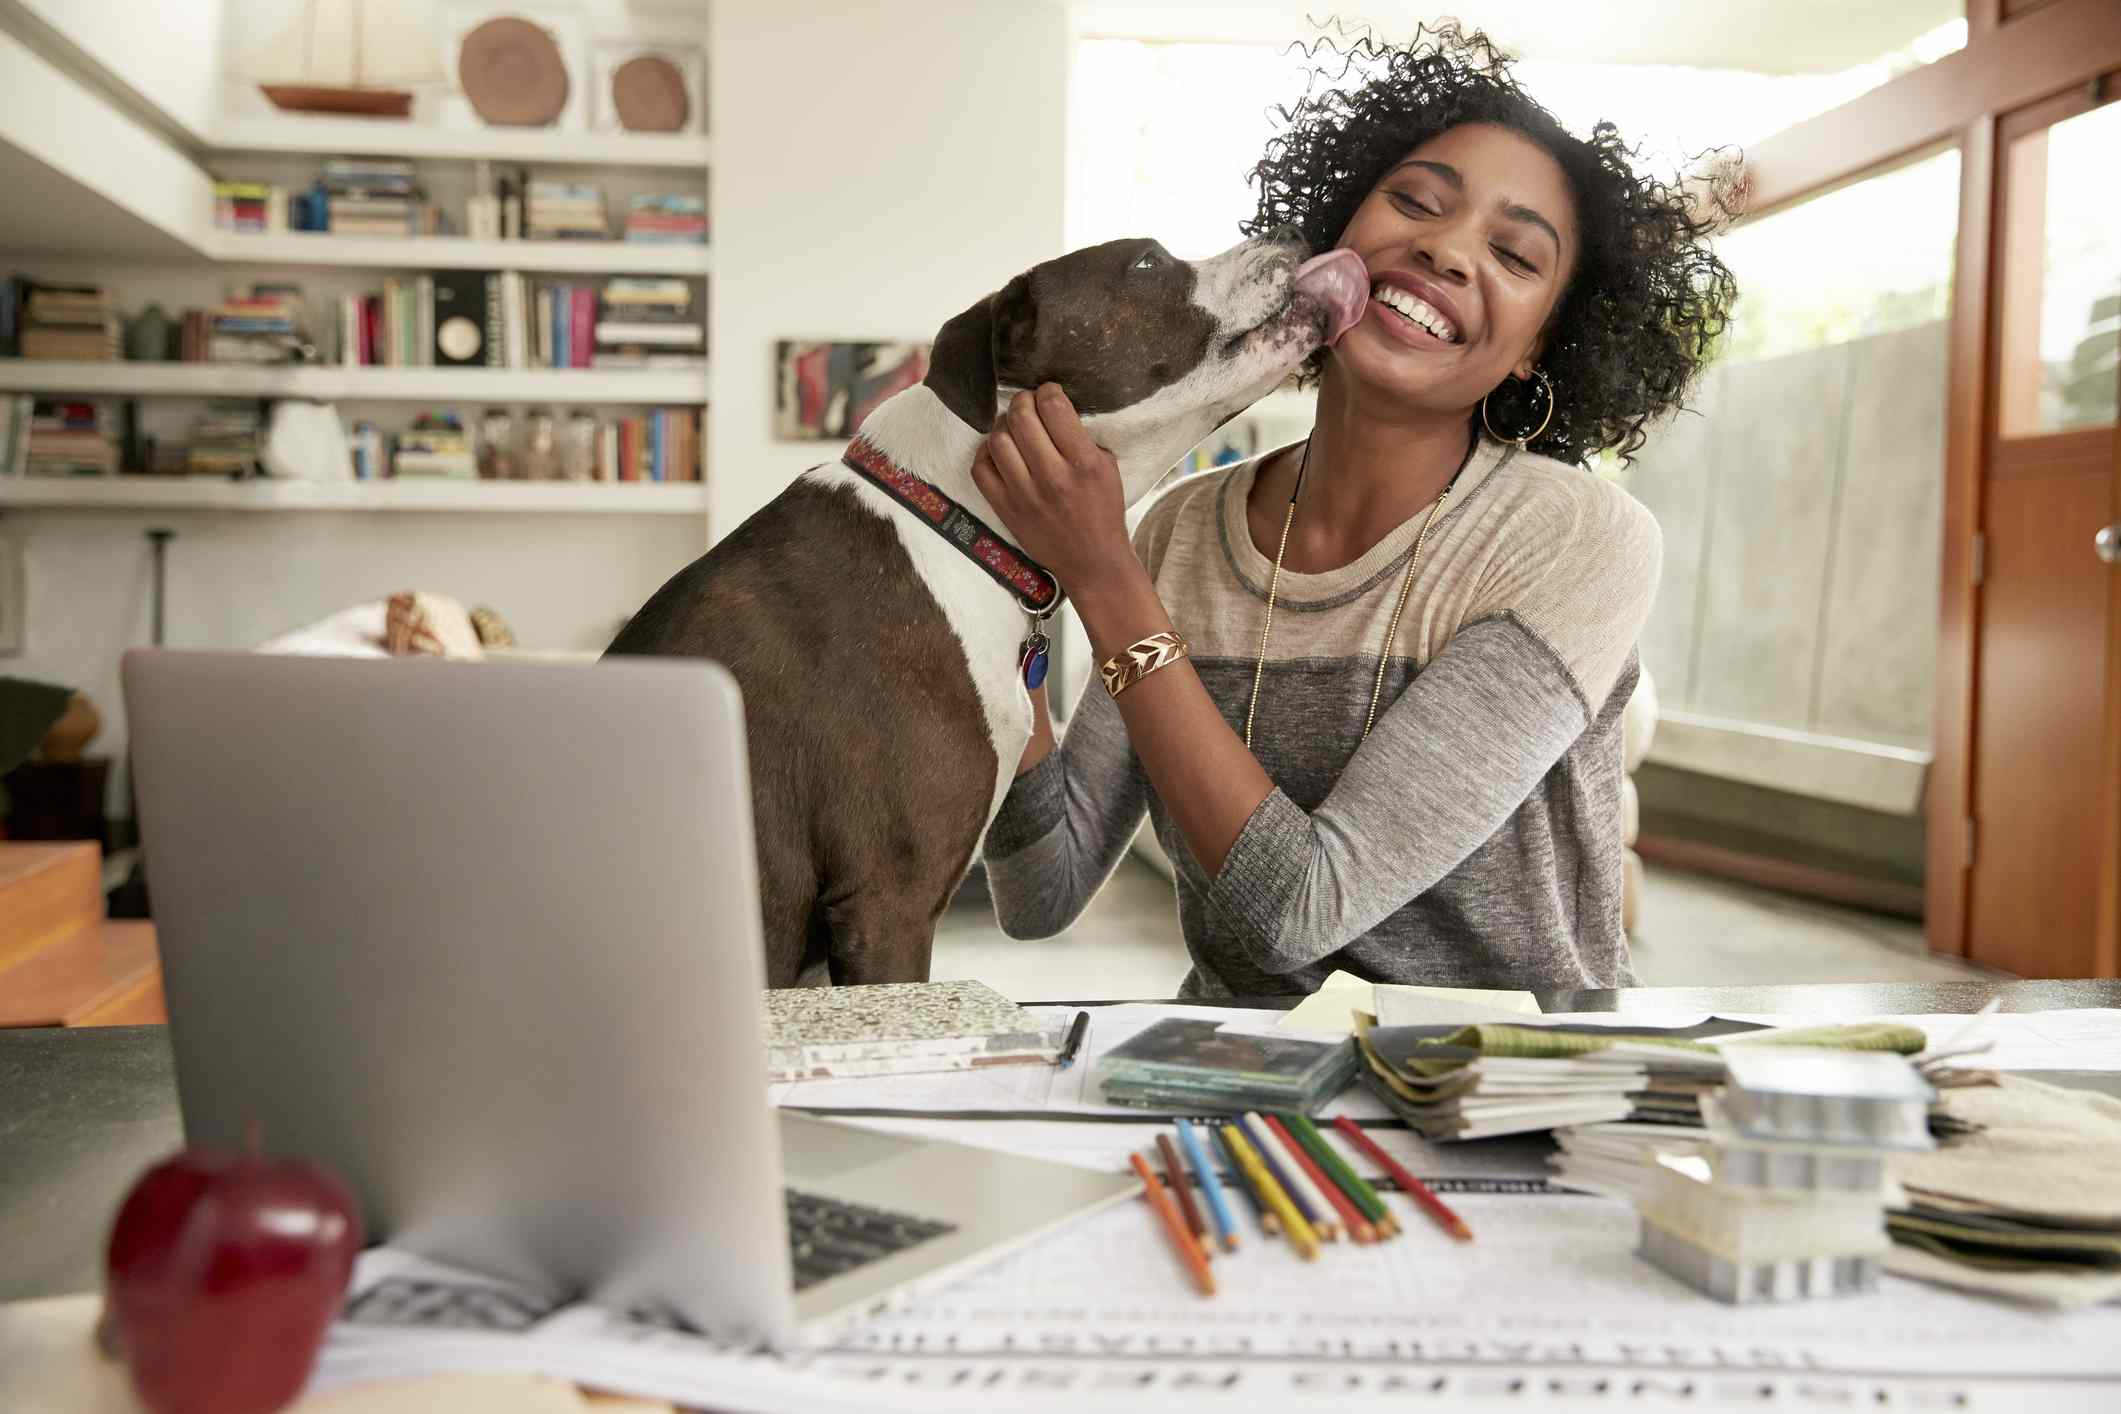 A dog licking the face of a woman at work